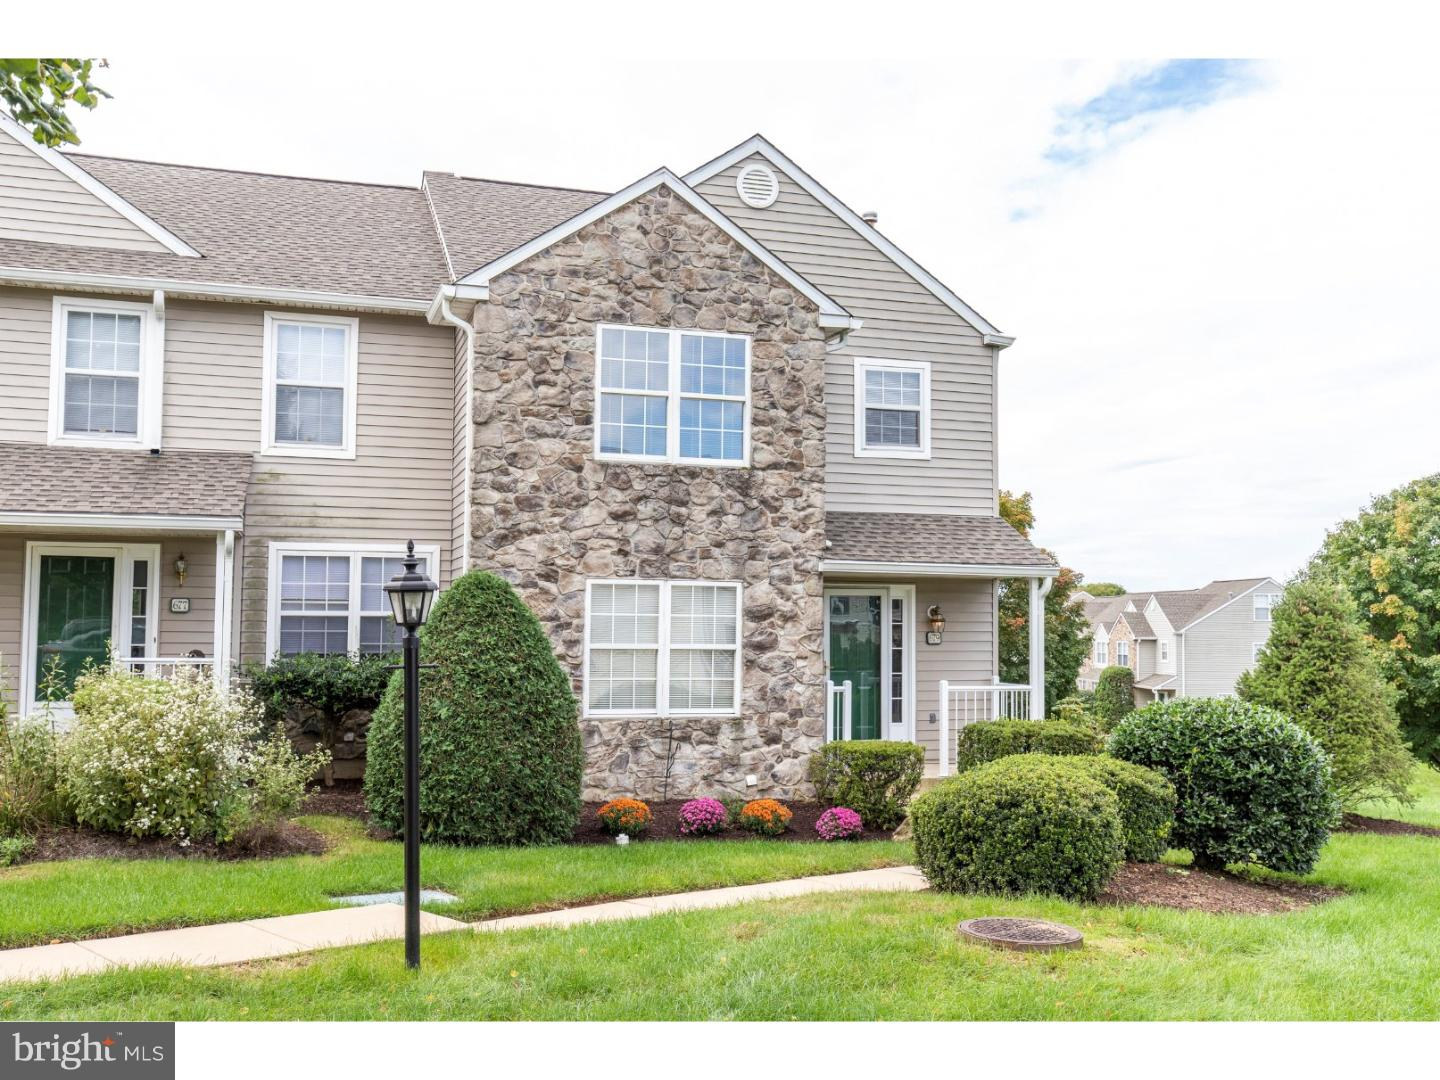 679 Shropshire Drive West Chester, PA 19382